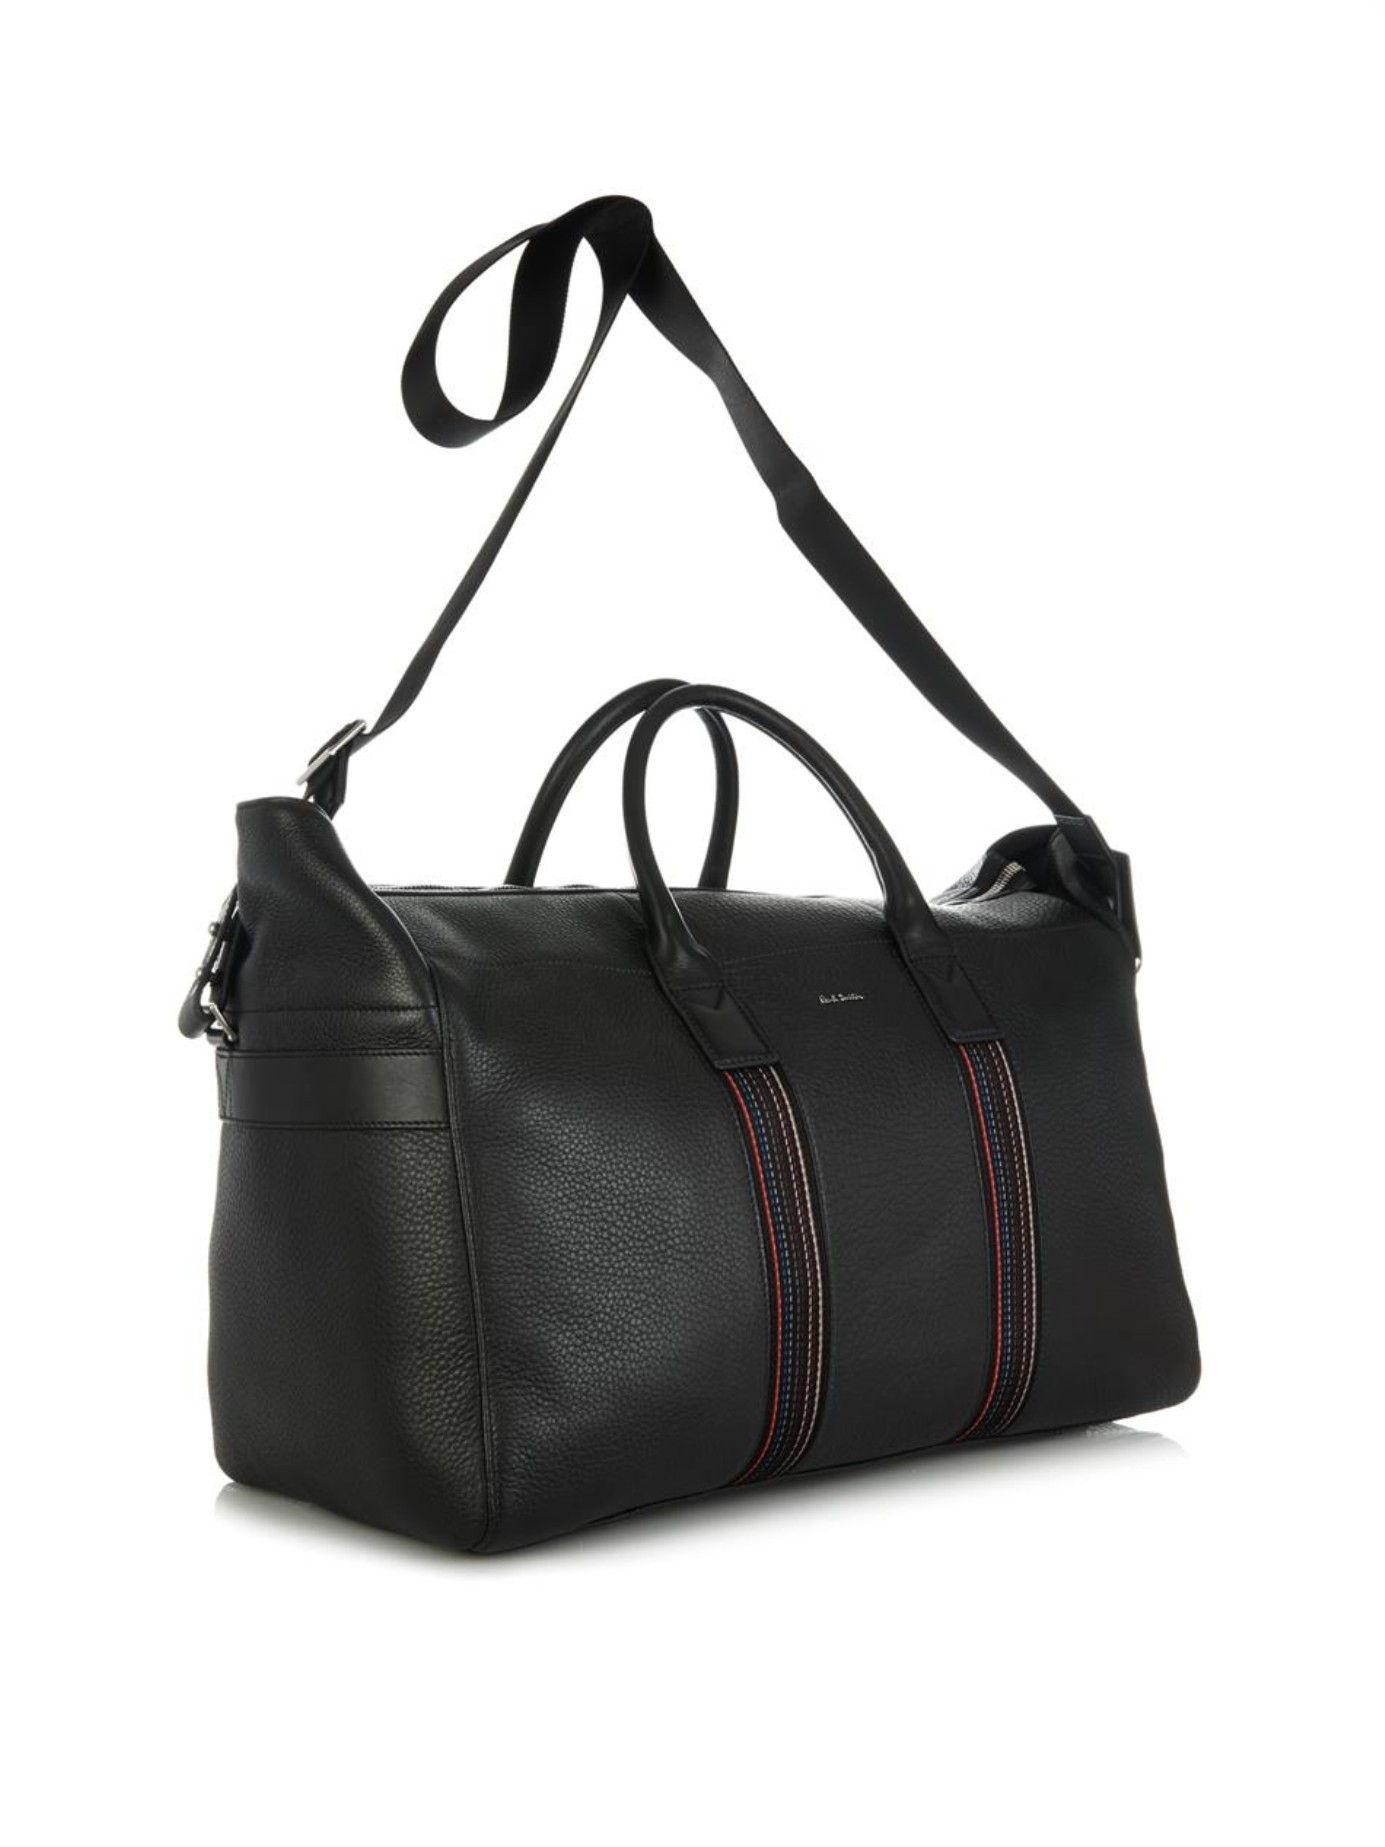 bfc7d5f13 Paul Smith City Webbing Leather Weekend Bag in Black for Men - Lyst